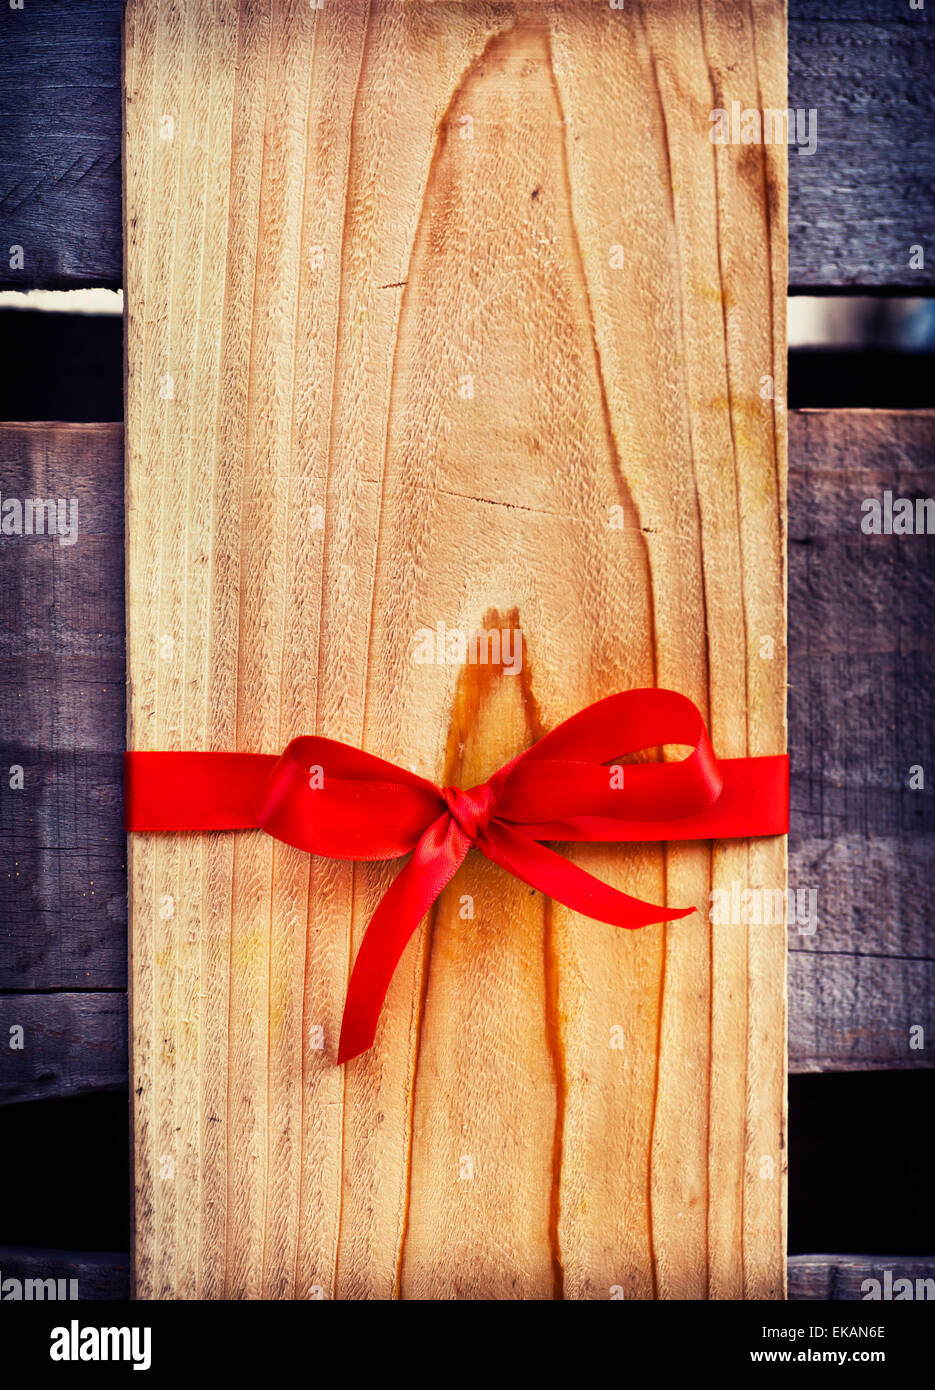 Red Bow And Blank Gift Tag With Wooden Wall - Stock Image